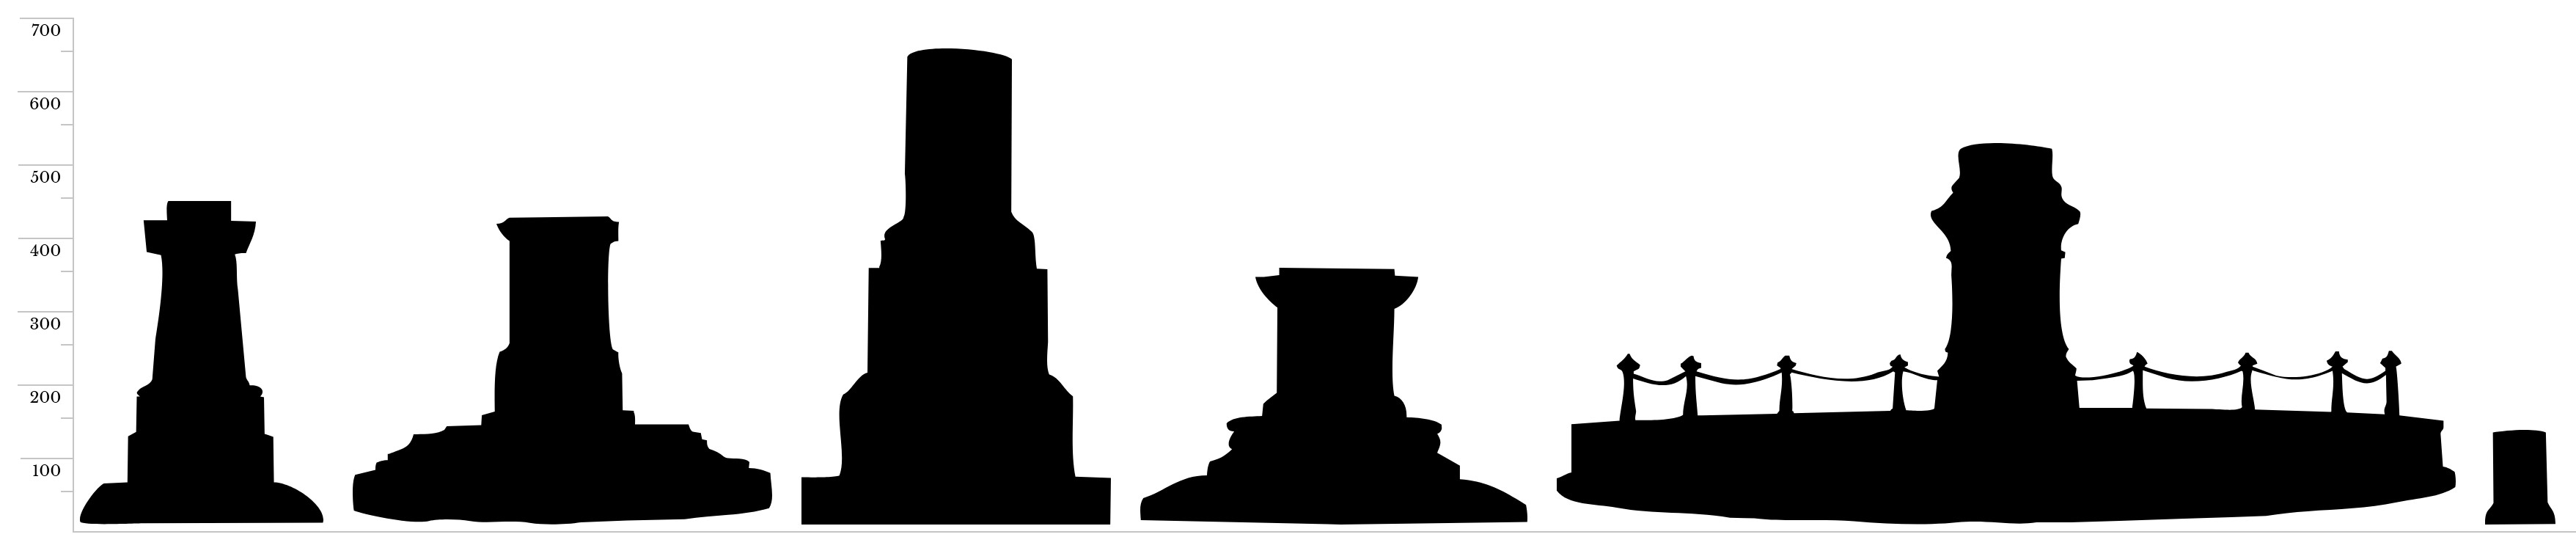 Outlines of several plinths in a row, for height comparison.